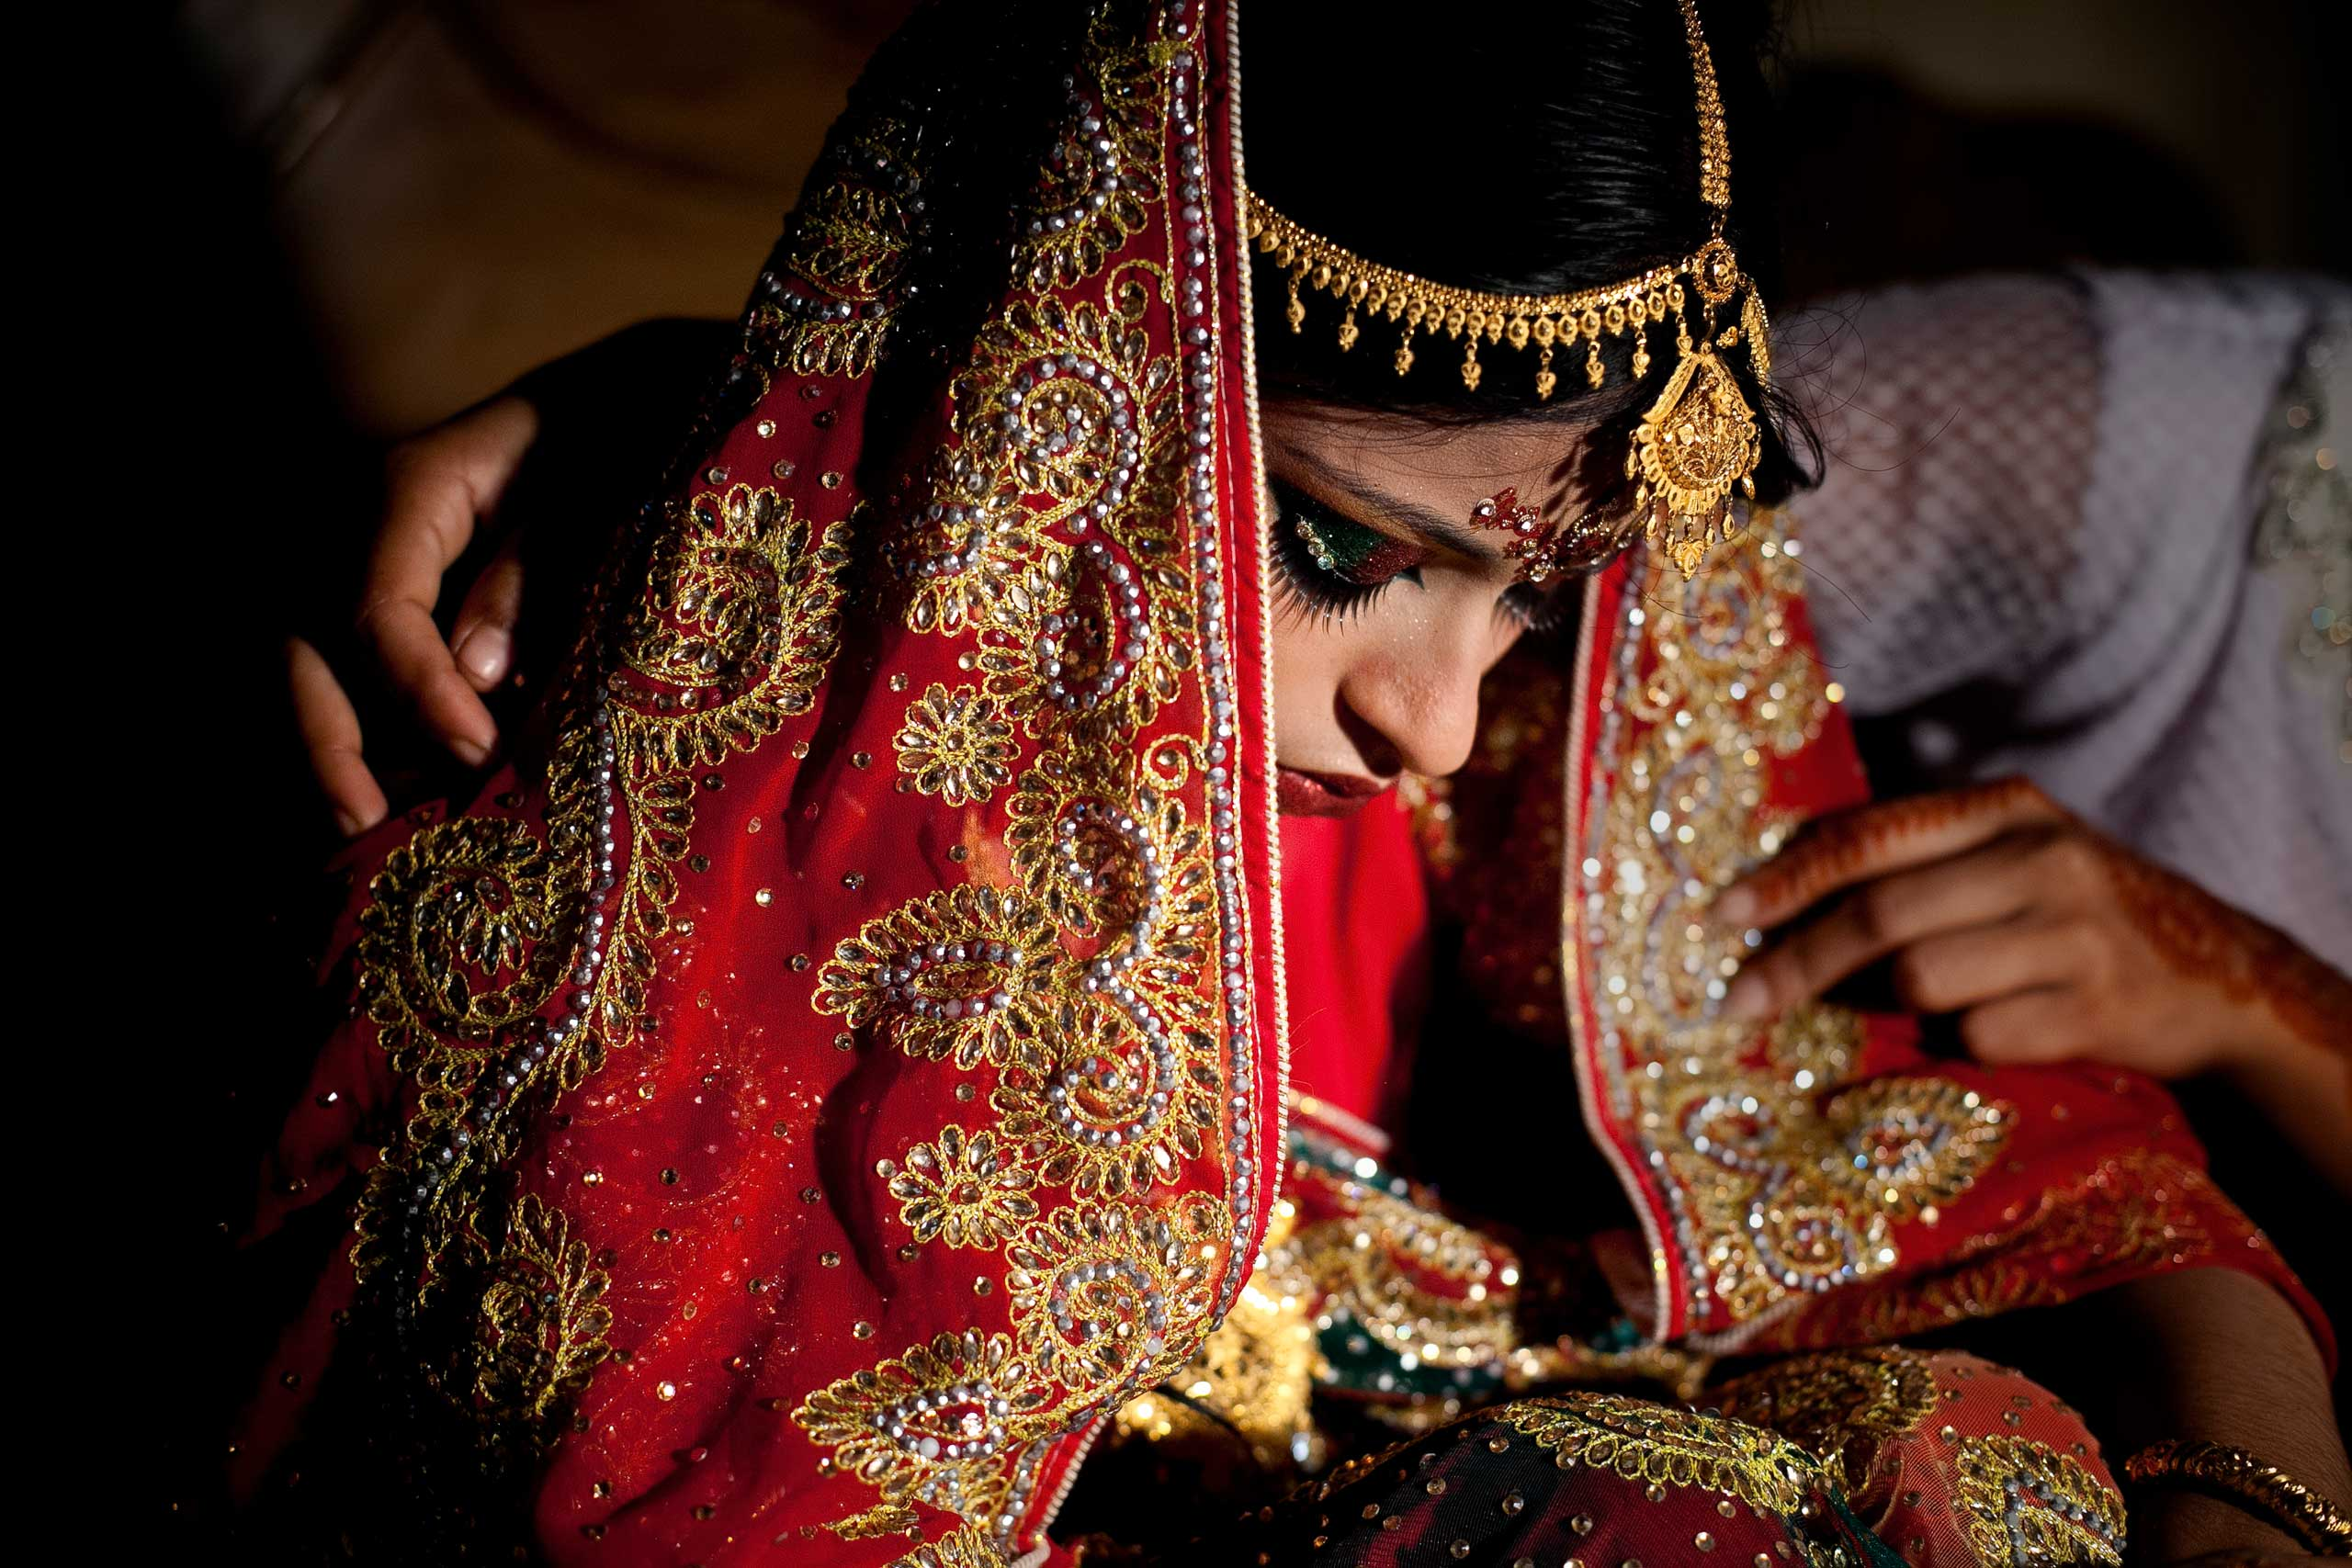 International Business Times: Child Marriage Bangladesh15 year old Nasoin Akhter is consoled by a friend on the day of her wedding to a 32 year old man, in Manikganj, Bangladesh, on Aug. 20, 2015.